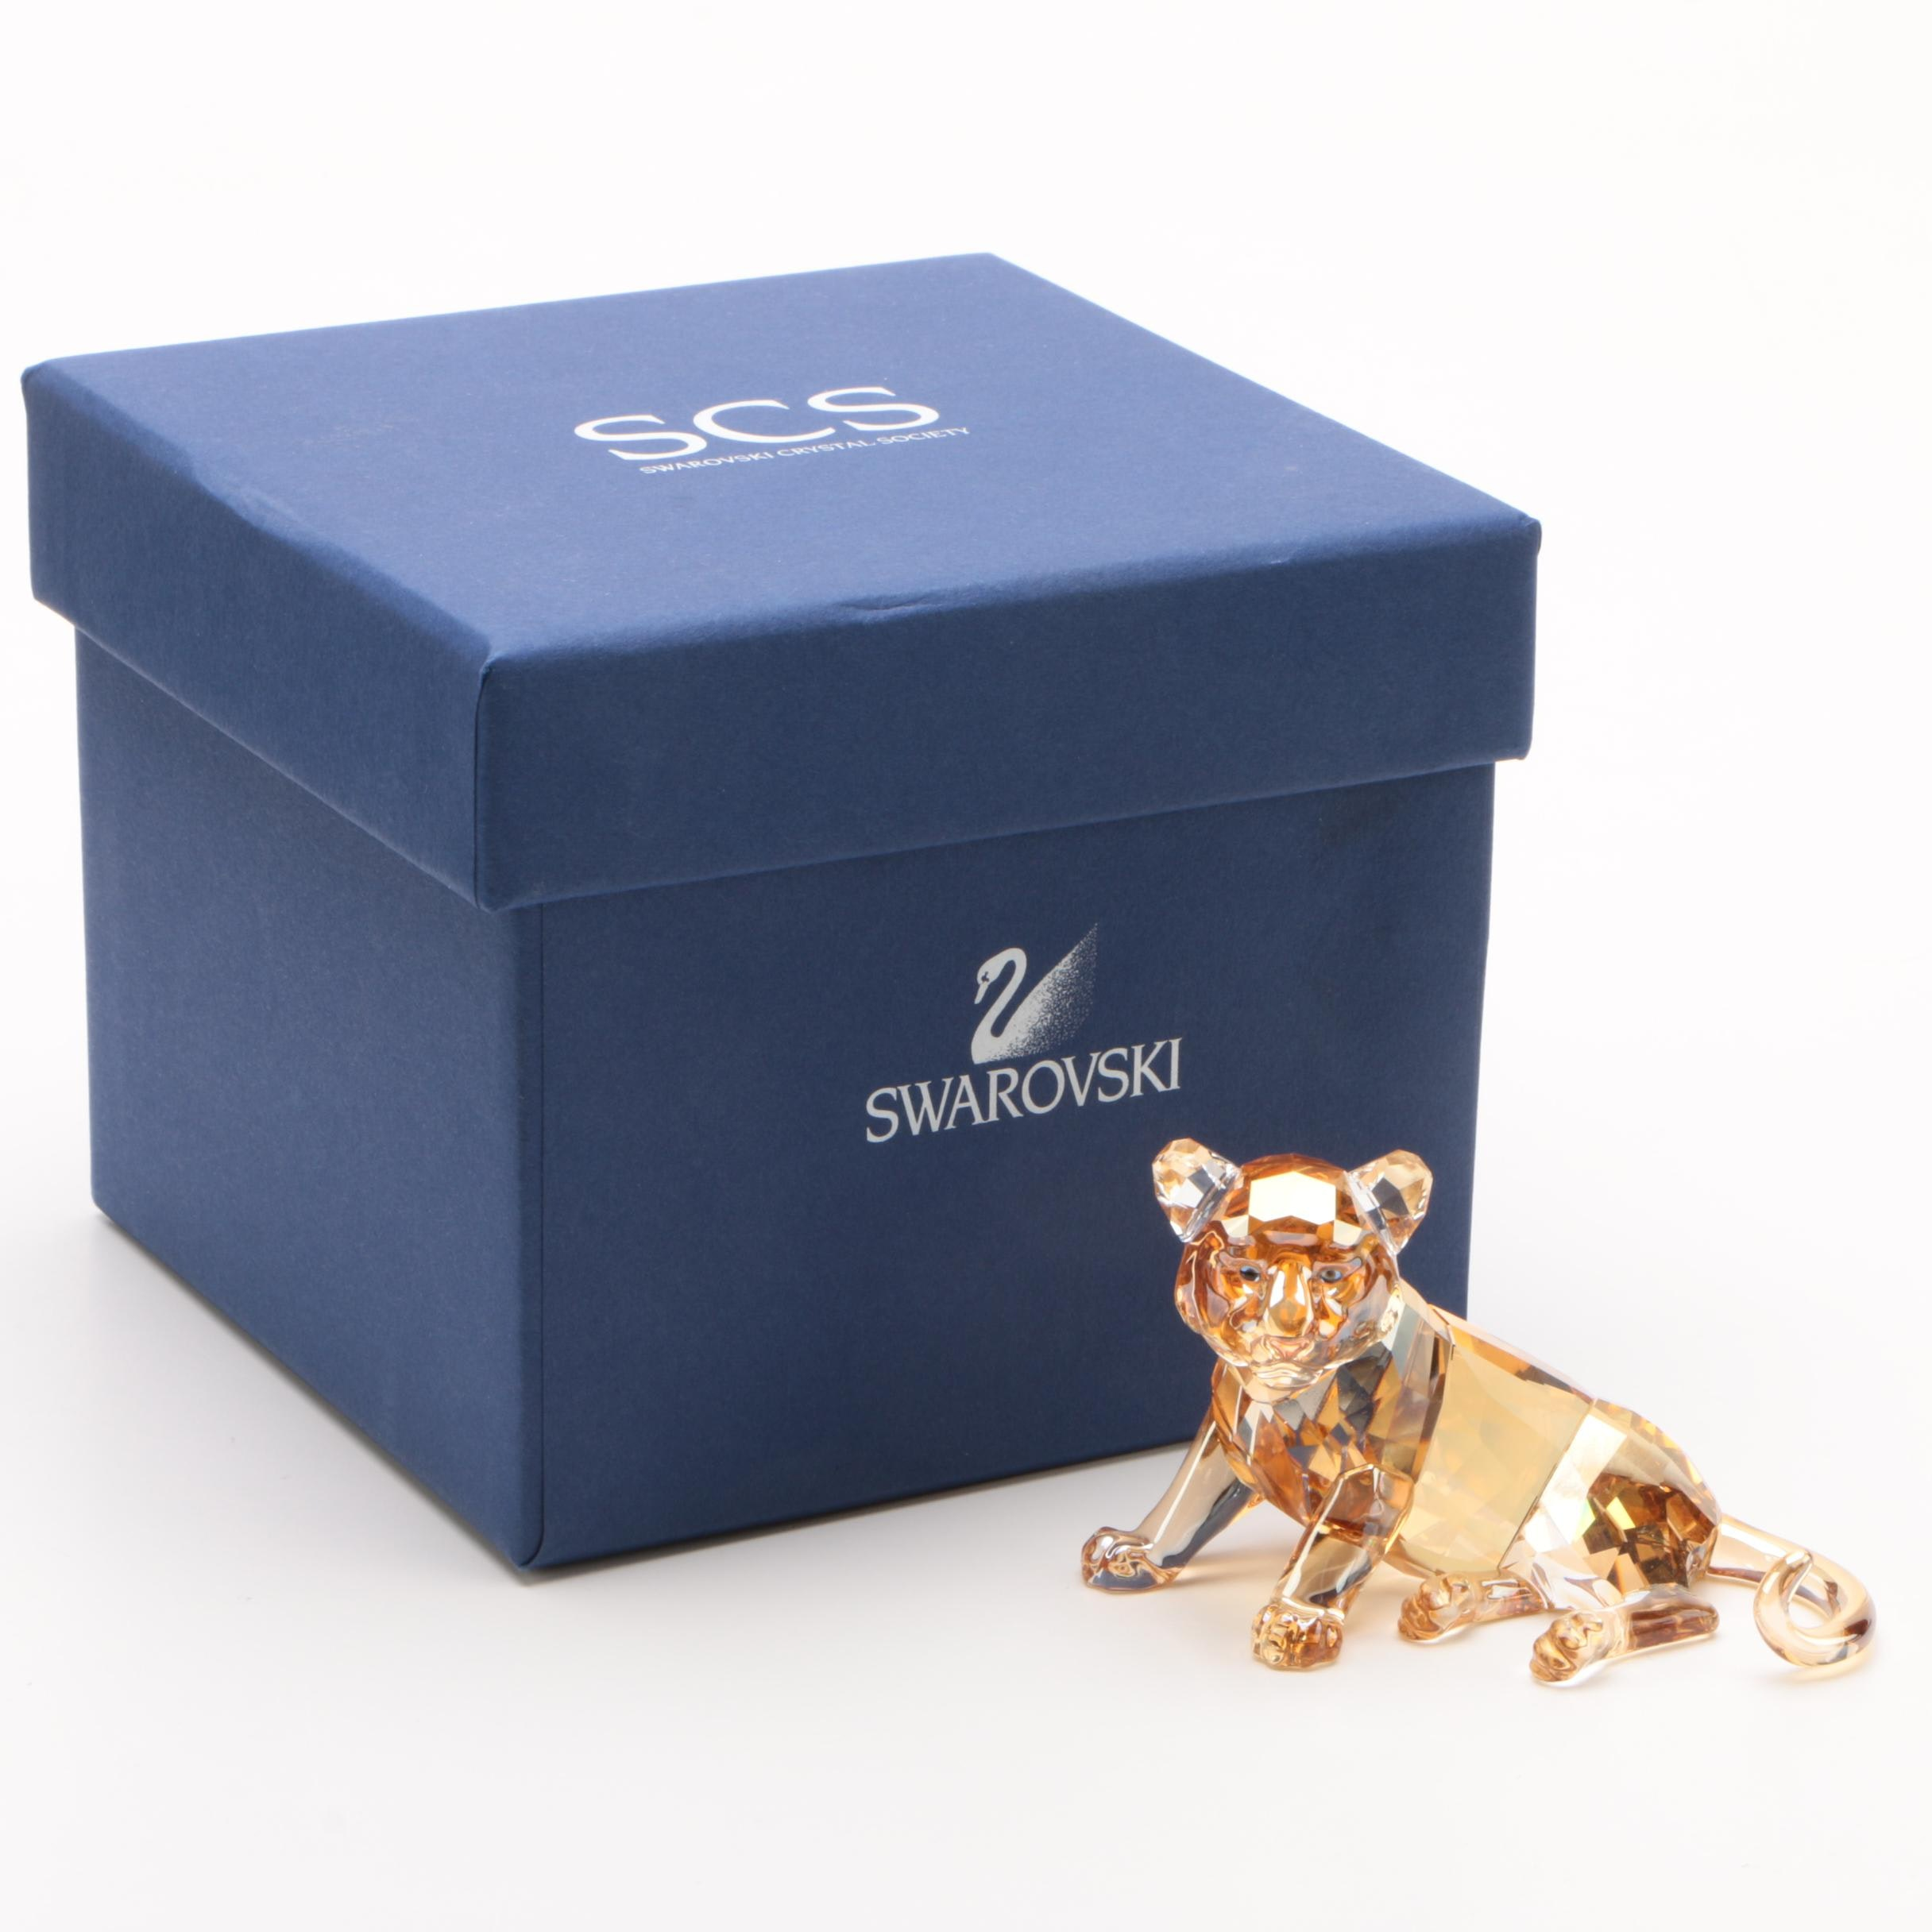 "Swarovski Endangered Wildlife ""Tiger Cub Sitting"" Crystal Figurine, 2010"